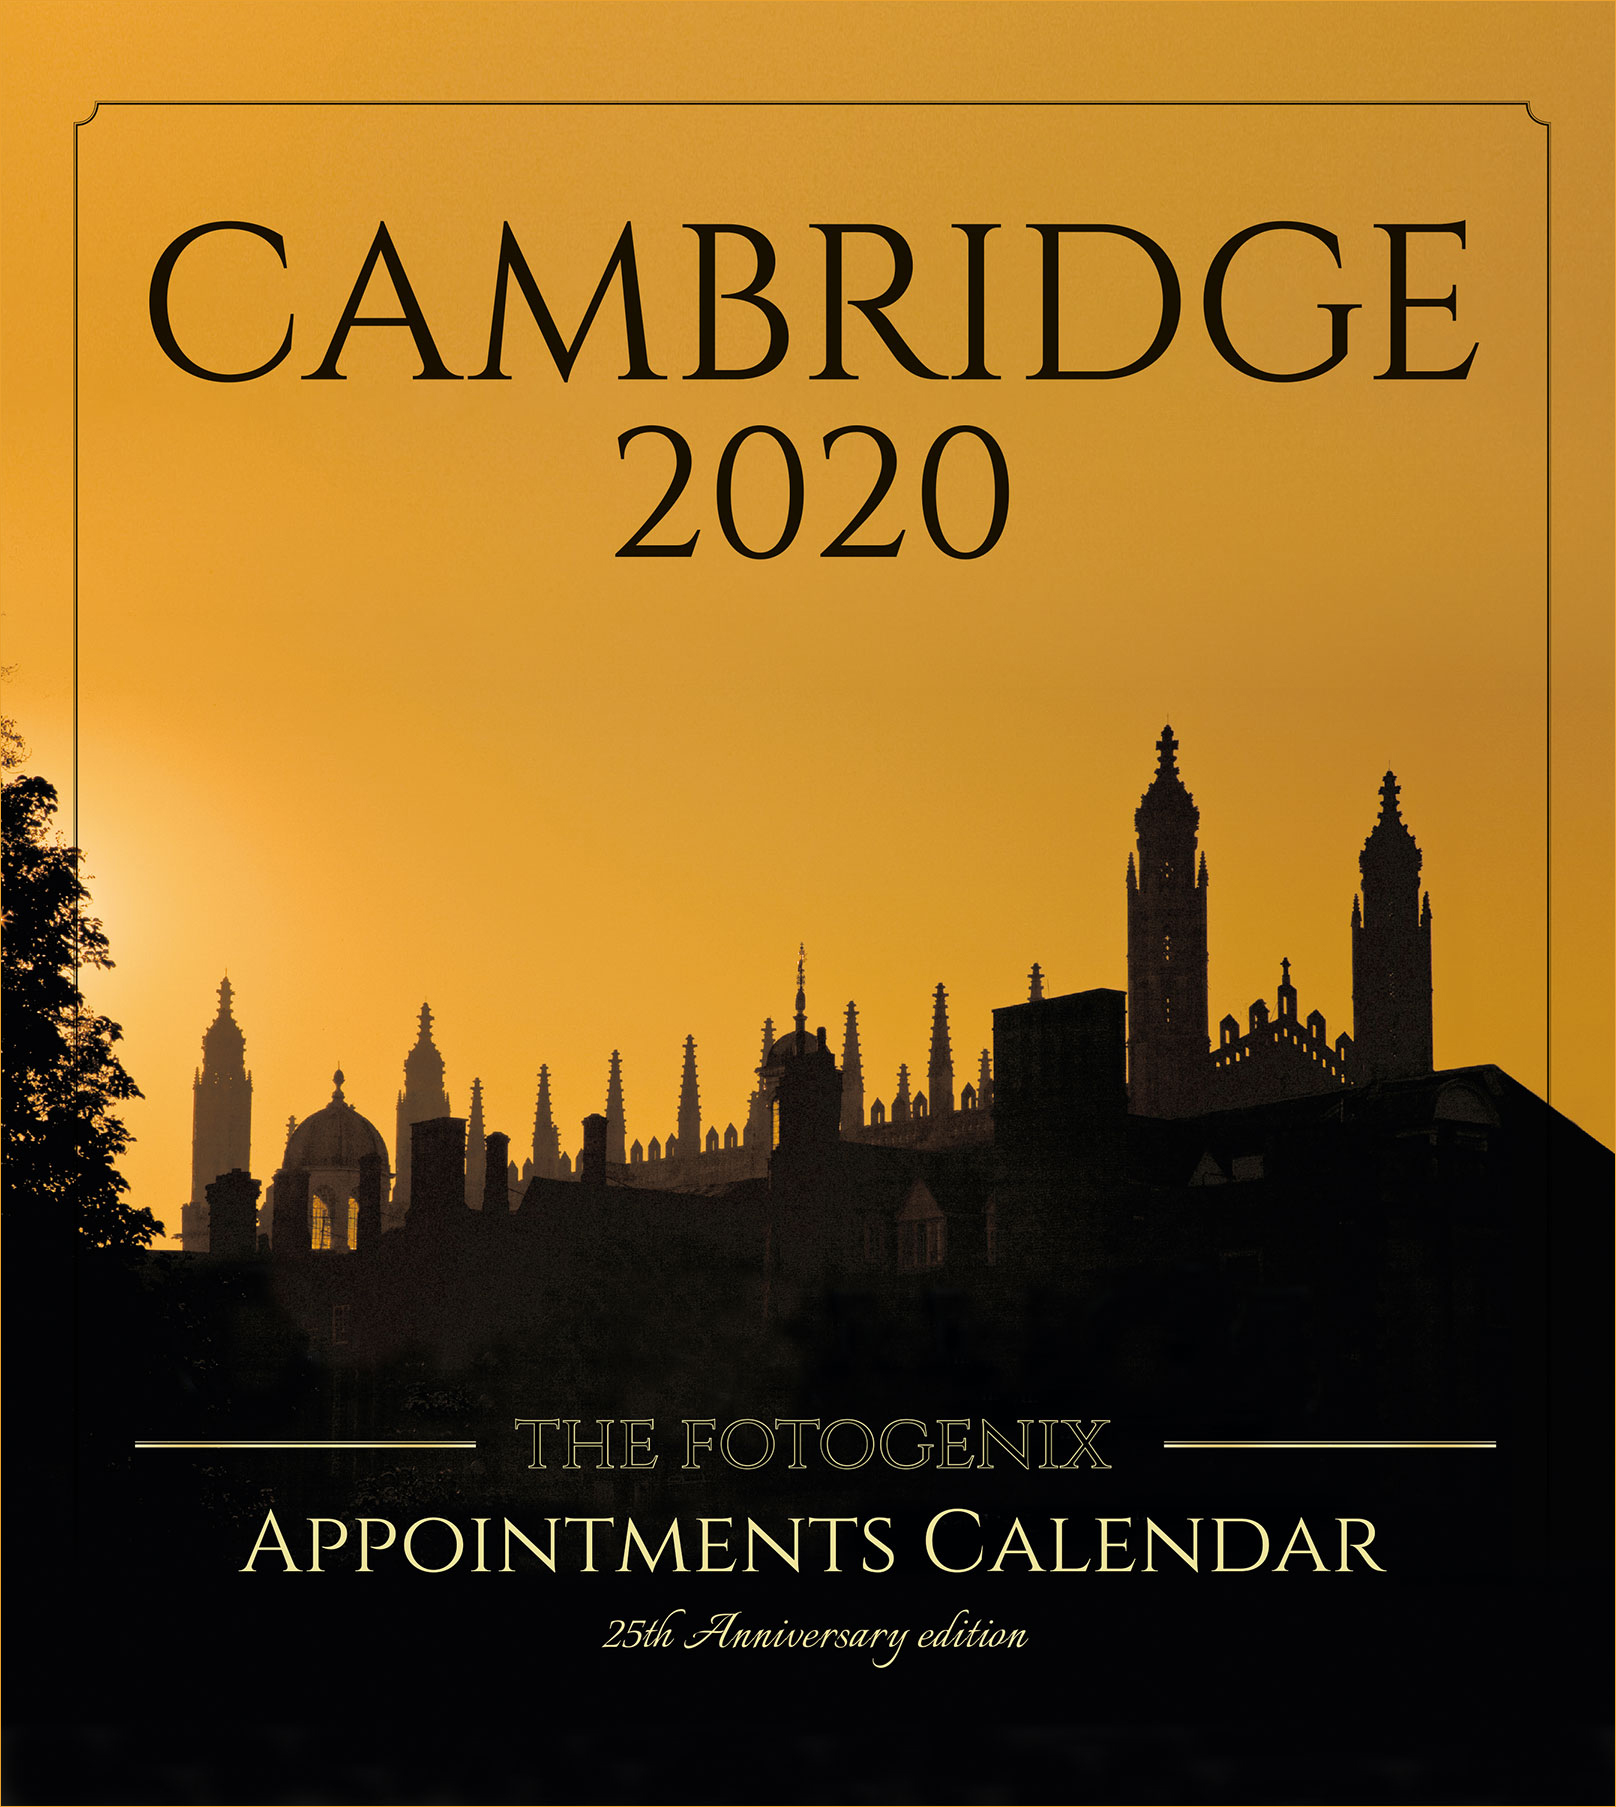 Please click here to view the Appointments Calendar for 2020